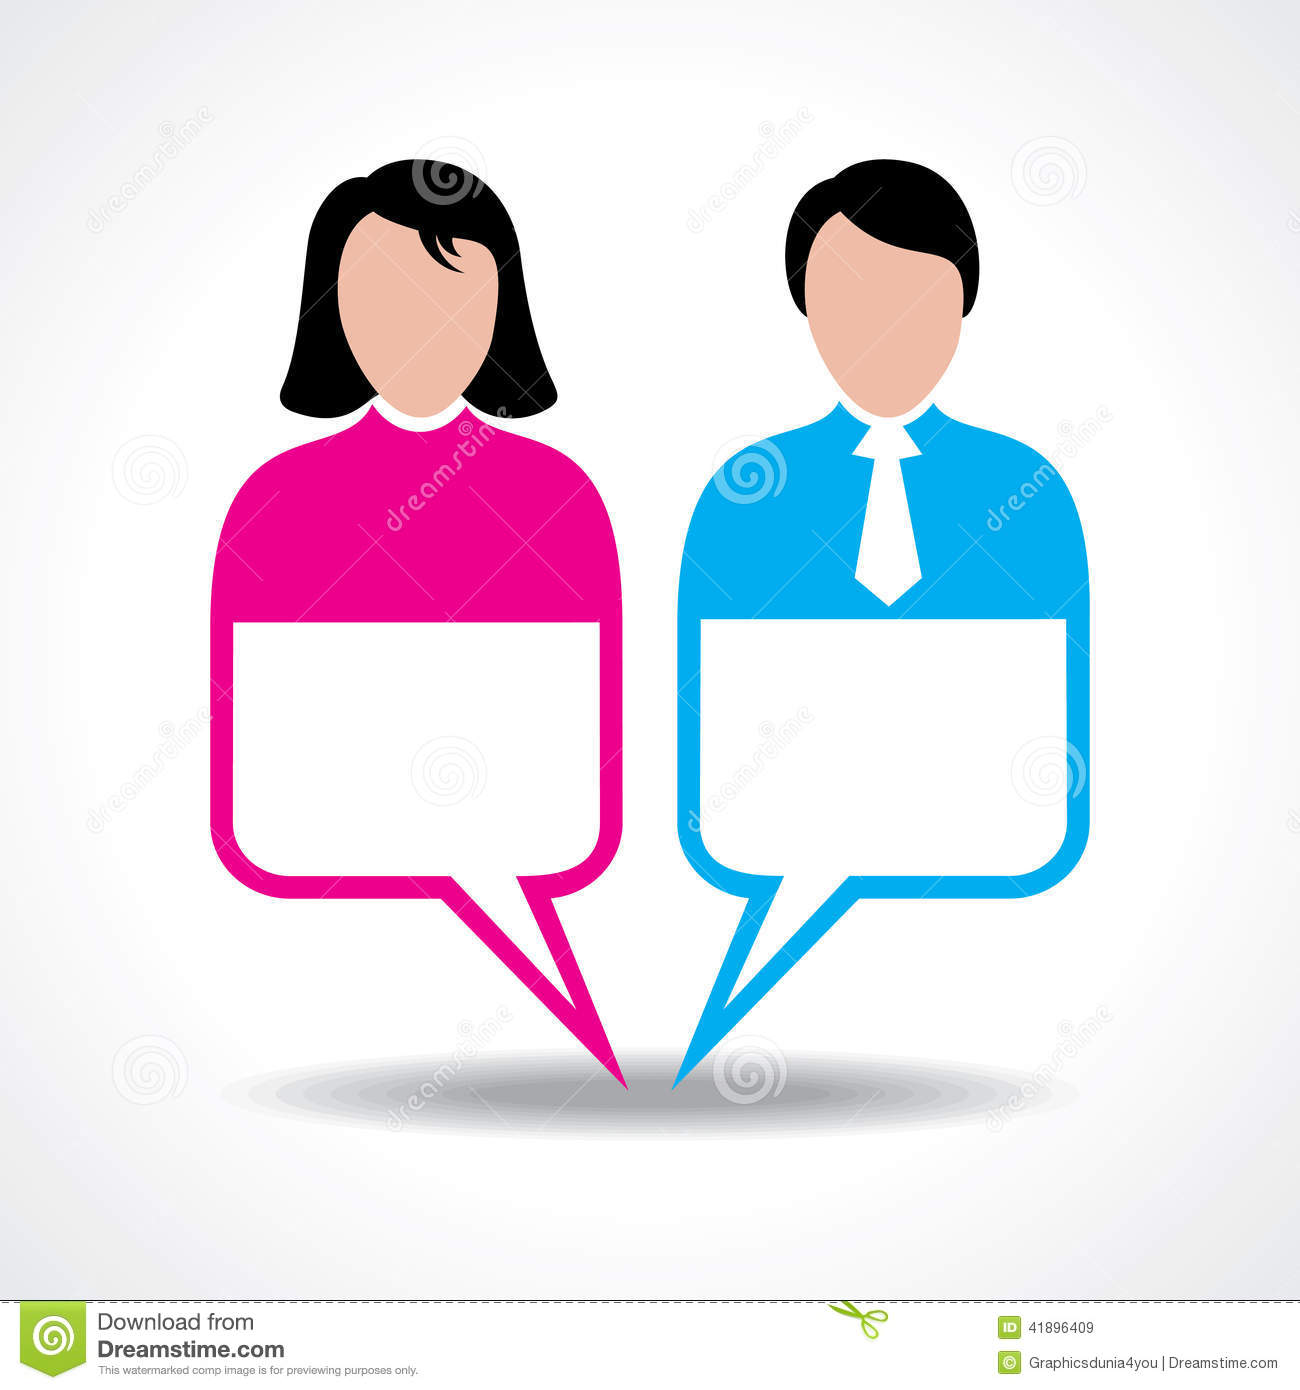 Male and female icon with message bubble